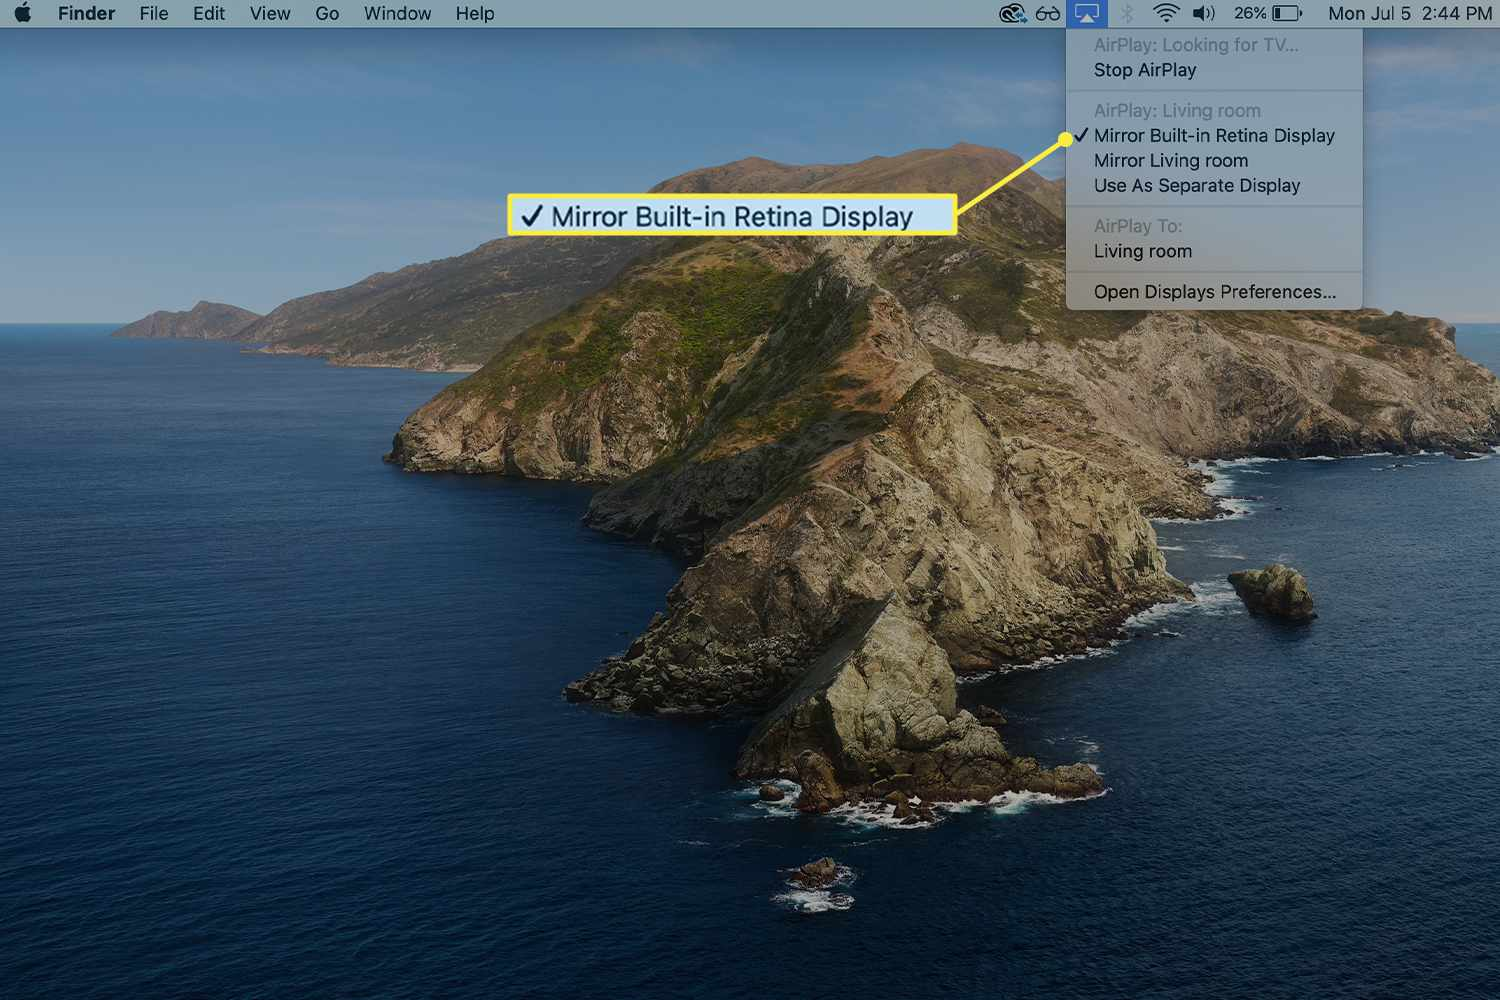 The option to match a Mac's built-in display size while mirroring highlighted from the AirPlay drop-down menu on a Mac.